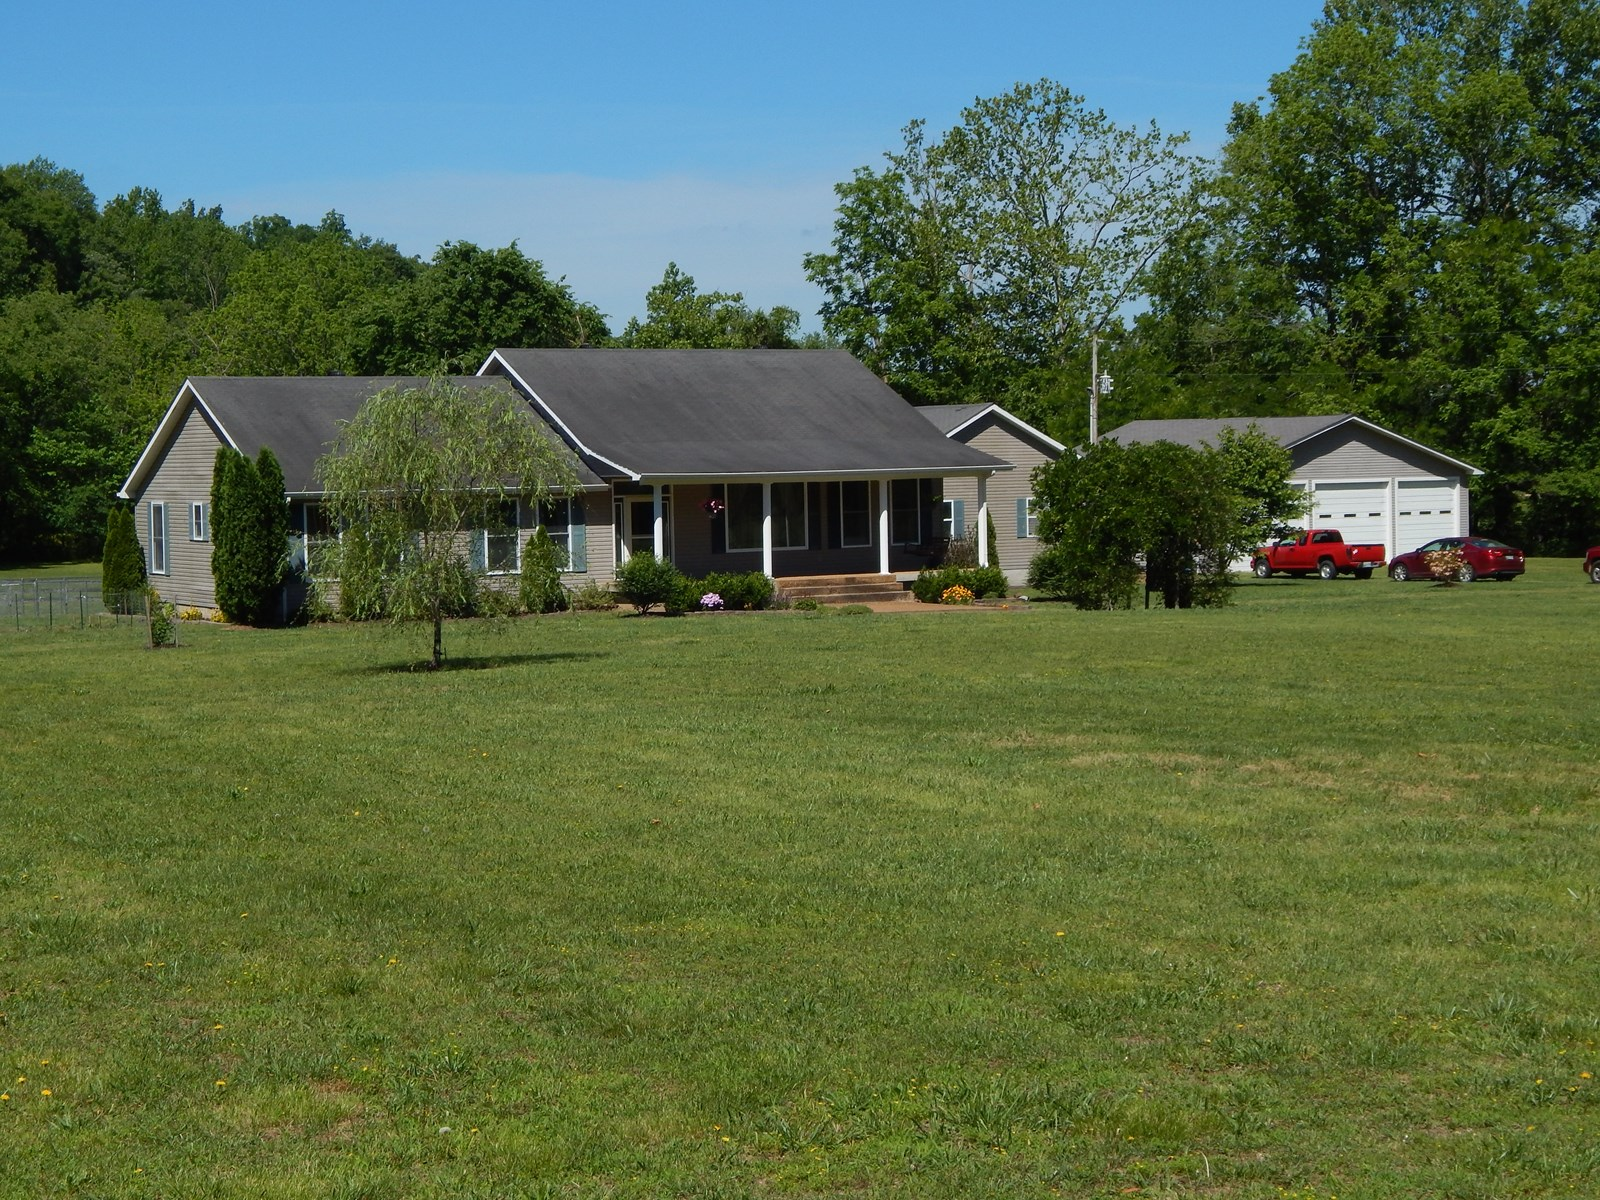 Tennessee Country Home For Sale, 5.3 Acres Small Horse Farm!